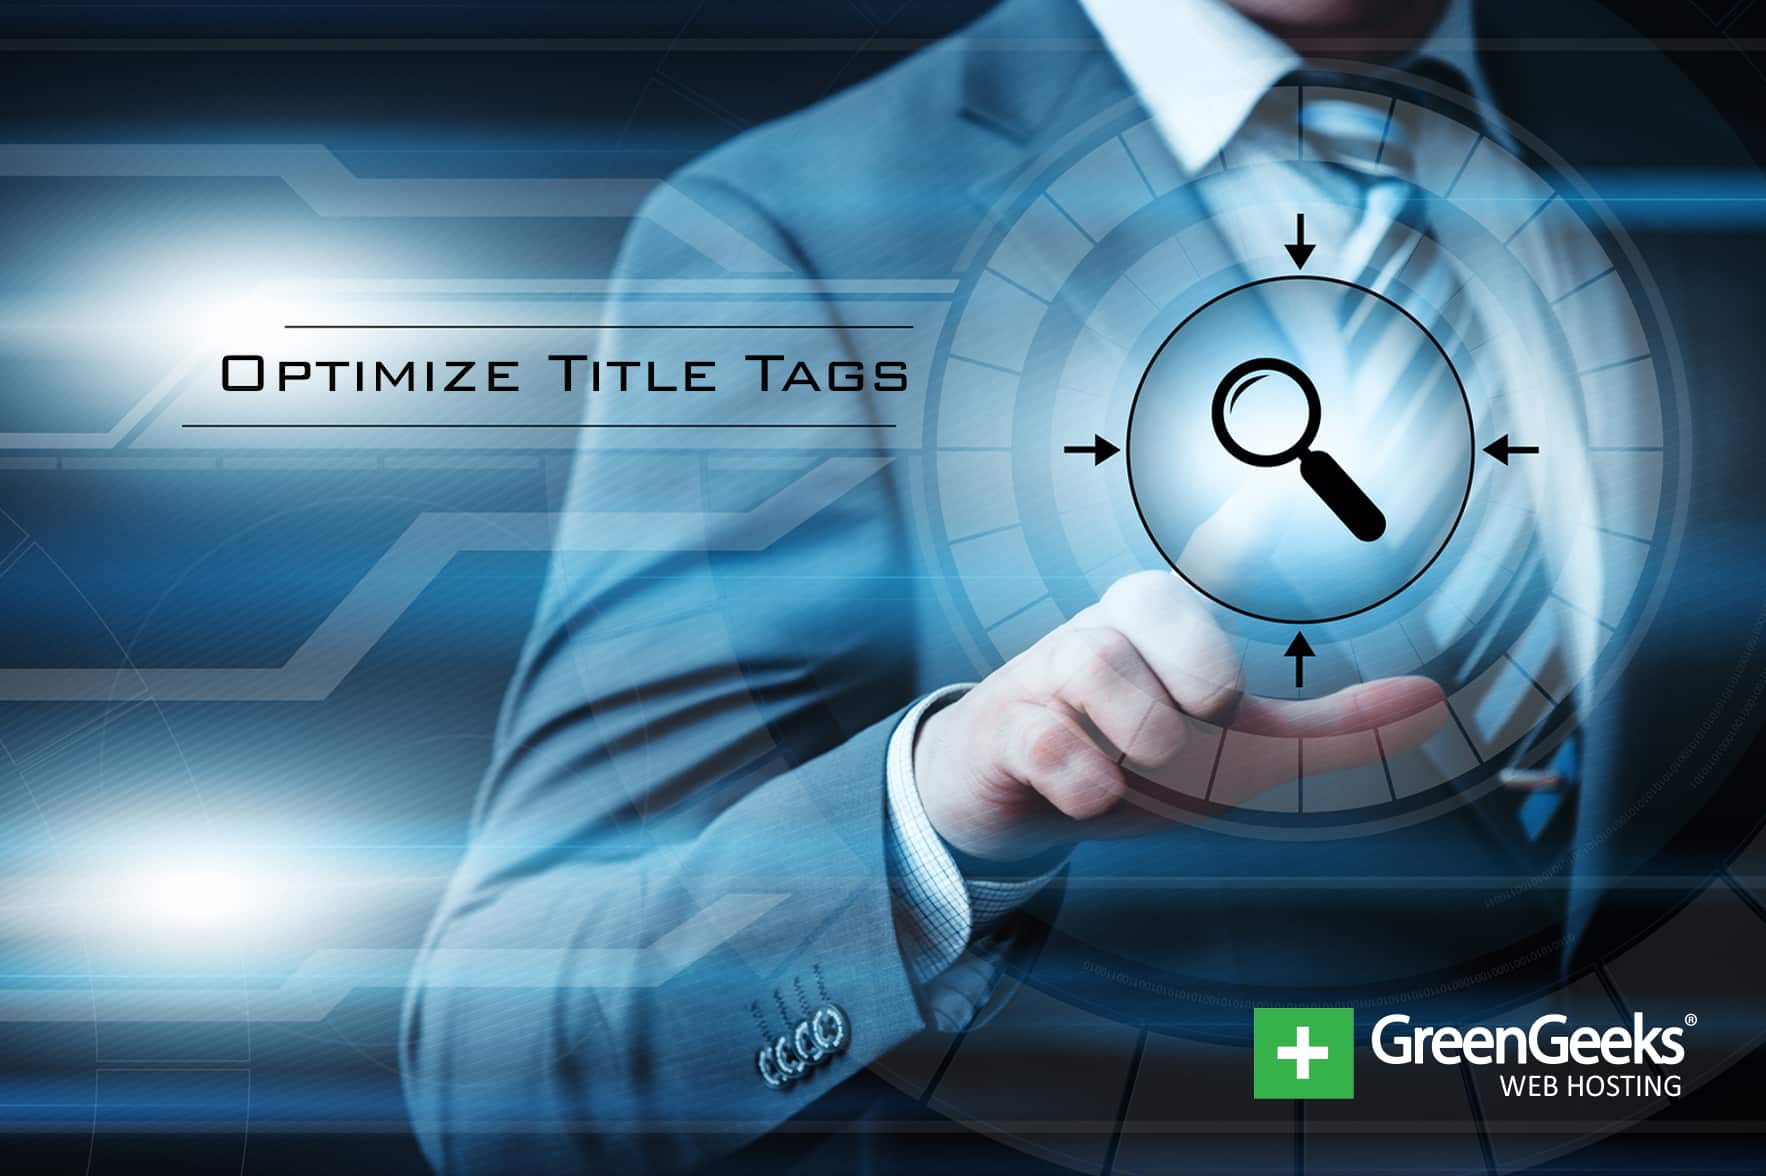 Optimize Title Tags